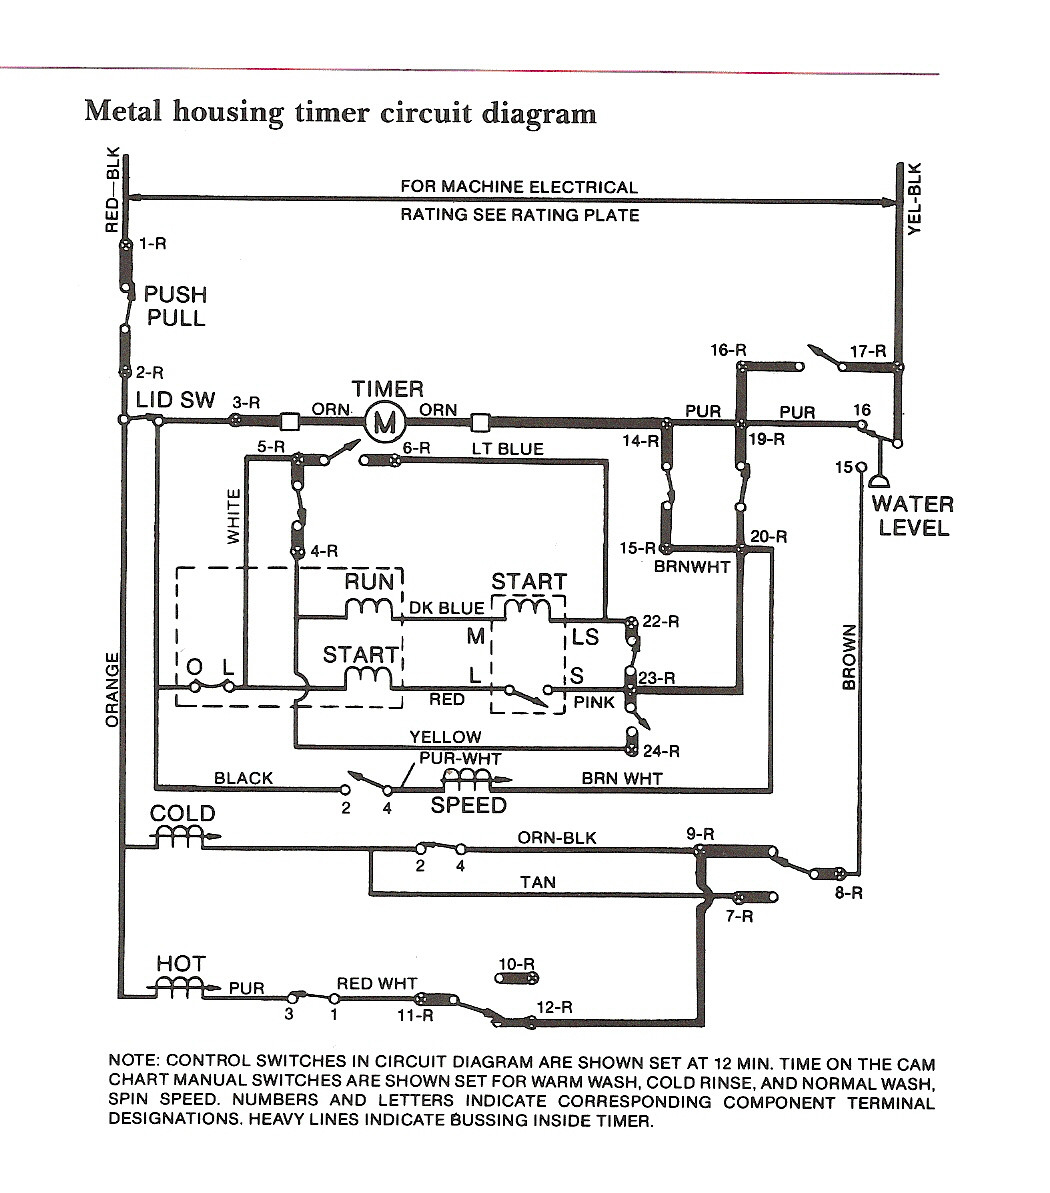 Ge Rr4 Wiring Diagram - Wiring Diagram K8 Ge Rr Relay Wiring Diagram on